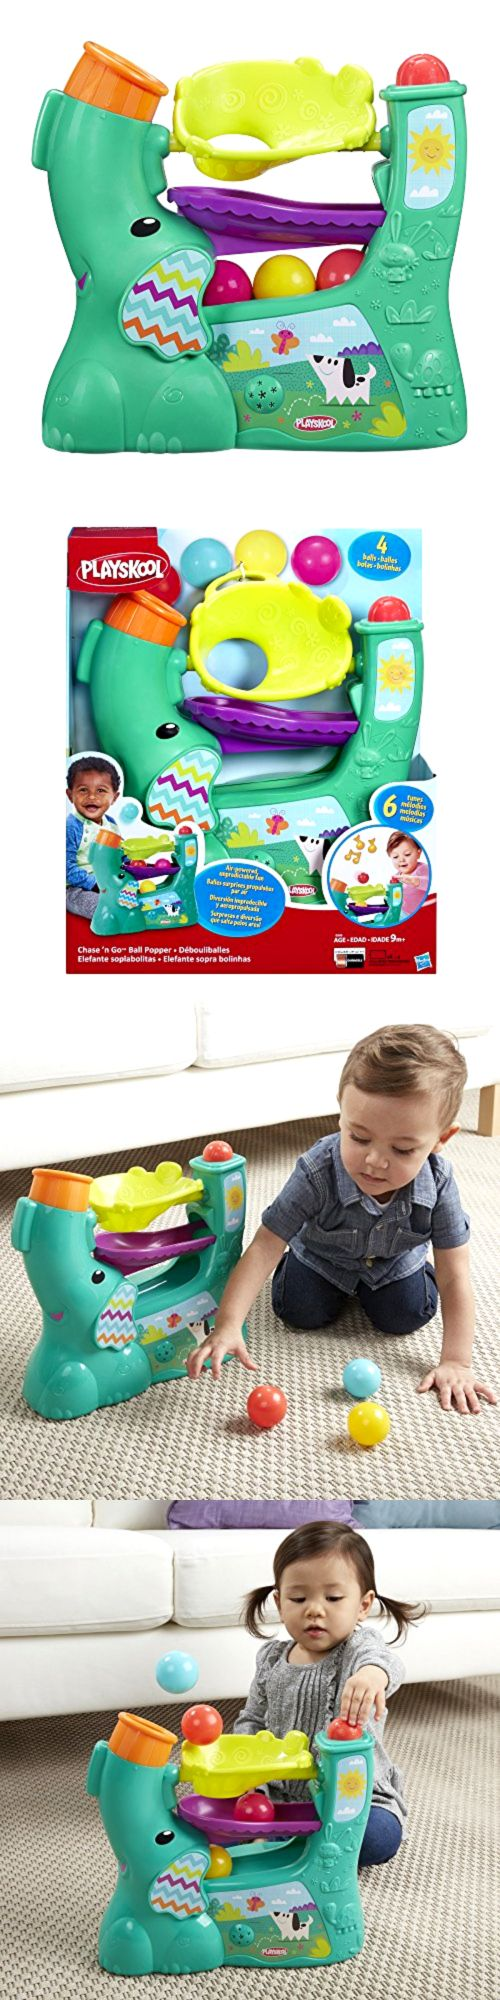 Playskool 2576: Chase N Go Ball Popper Playskool Teal Air Powered Interactive Toys For Toddlers -> BUY IT NOW ONLY: $30.18 on eBay!